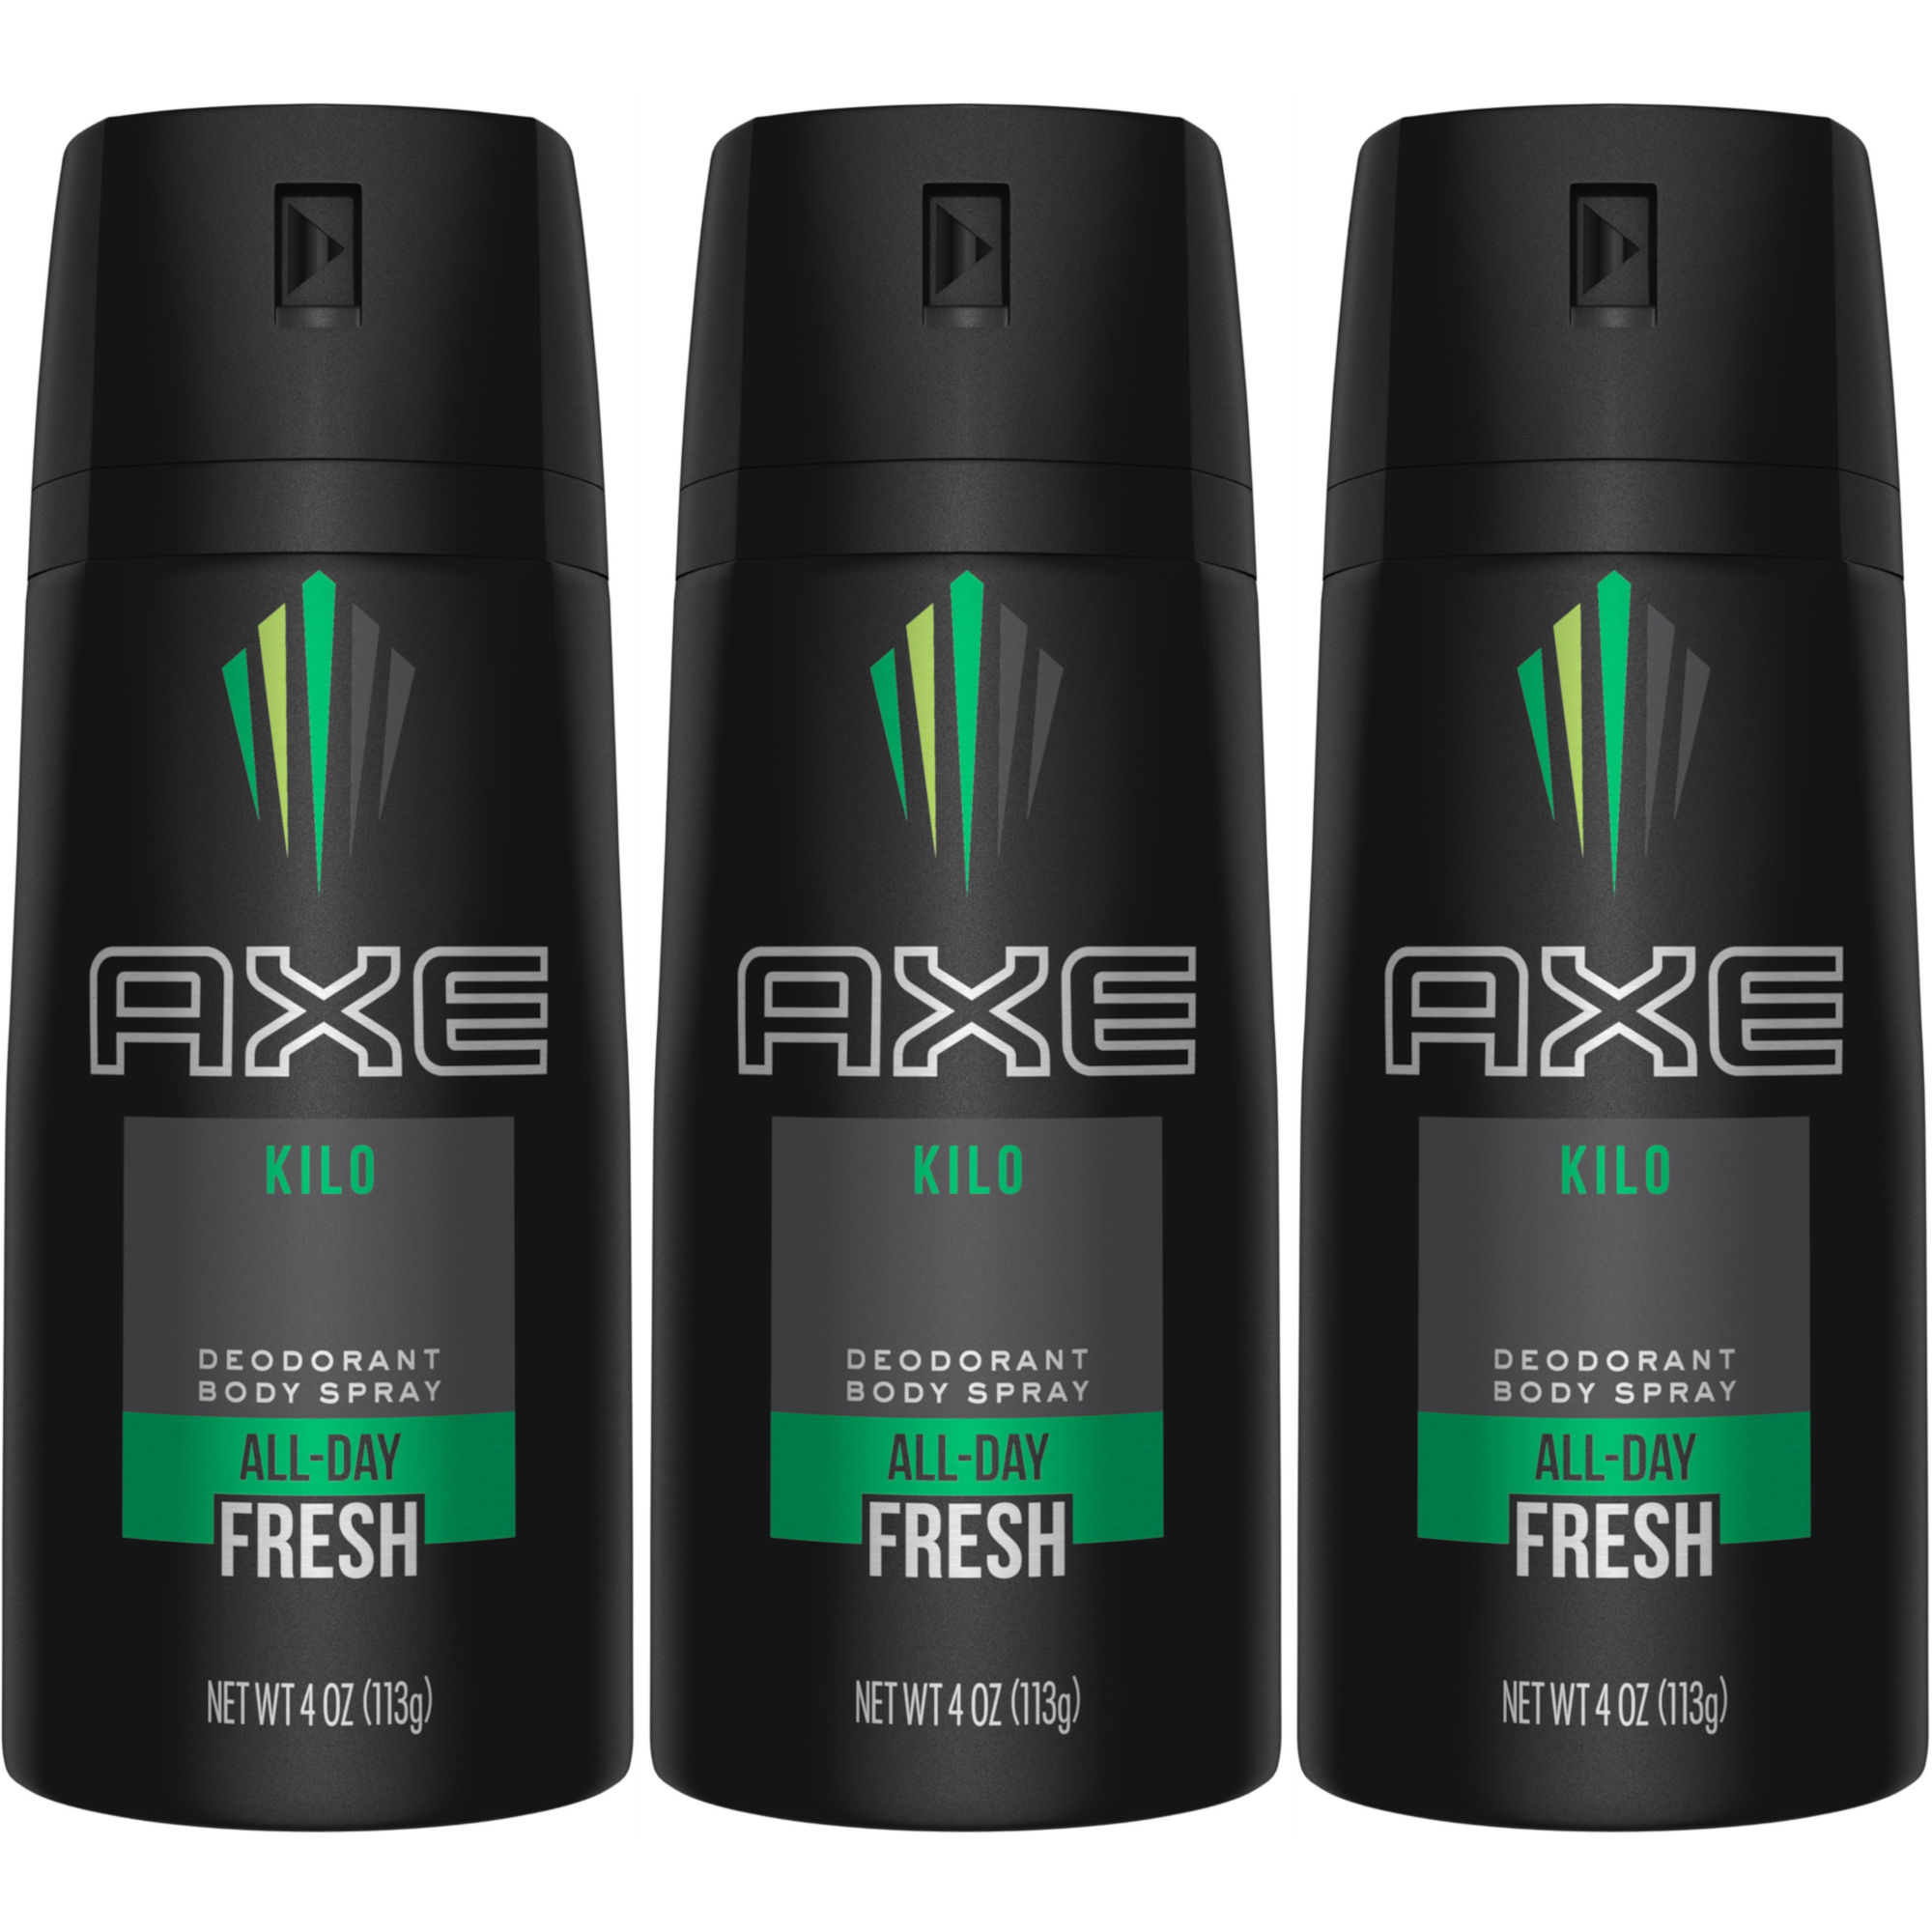 Men's Axe Deodorant Body Spray